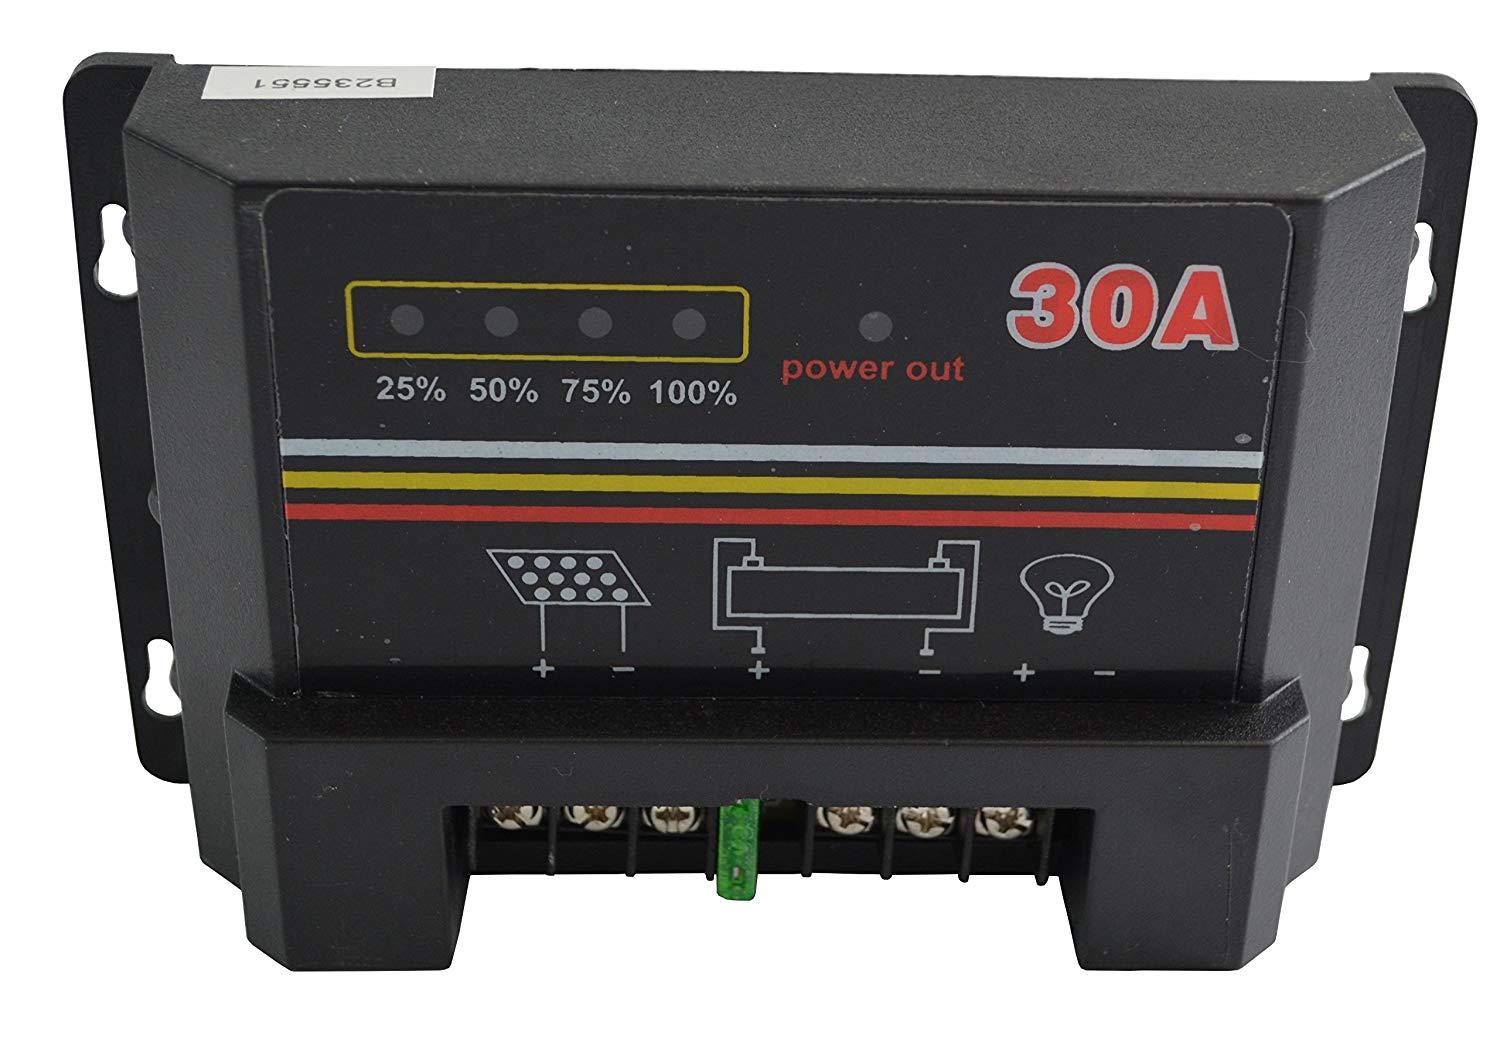 10A 20A 30A 12V 24V Solar Charge Controller Auto Switch LED Intelligent Display Solar Panel Battery Regulator Charge Controller Overload Protection Temperature Compensation (30A)